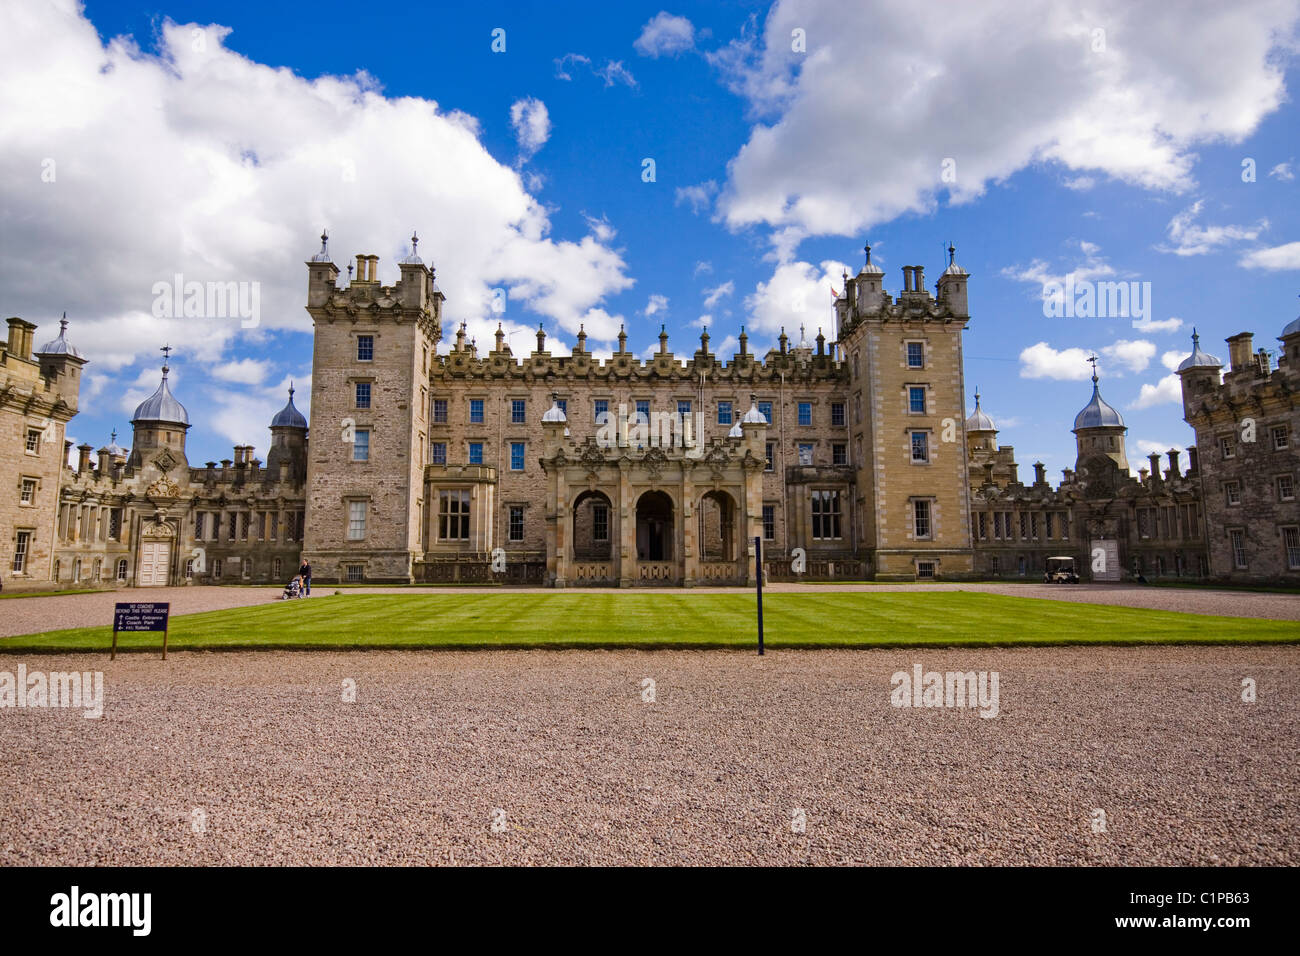 Scotland, Lothian and Borders, Floors Castle, facade of castle with lawn in foreground, blue sky and white clouds - Stock Image